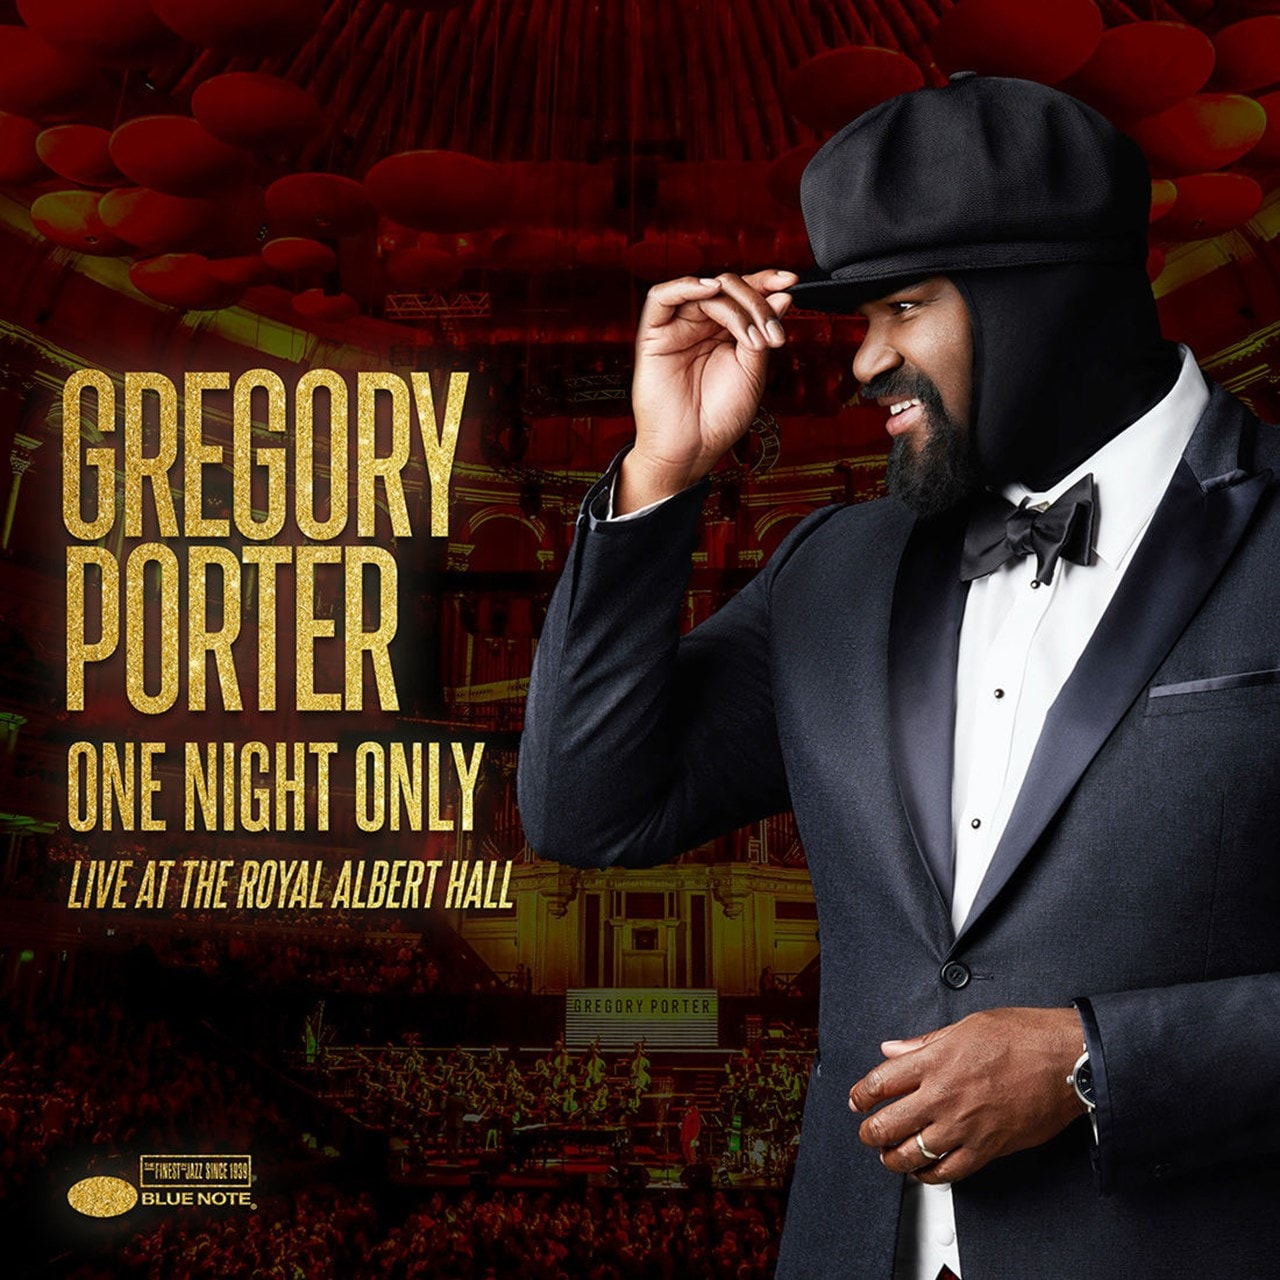 One Night Only: Live at the Royal Albert Hall - 1